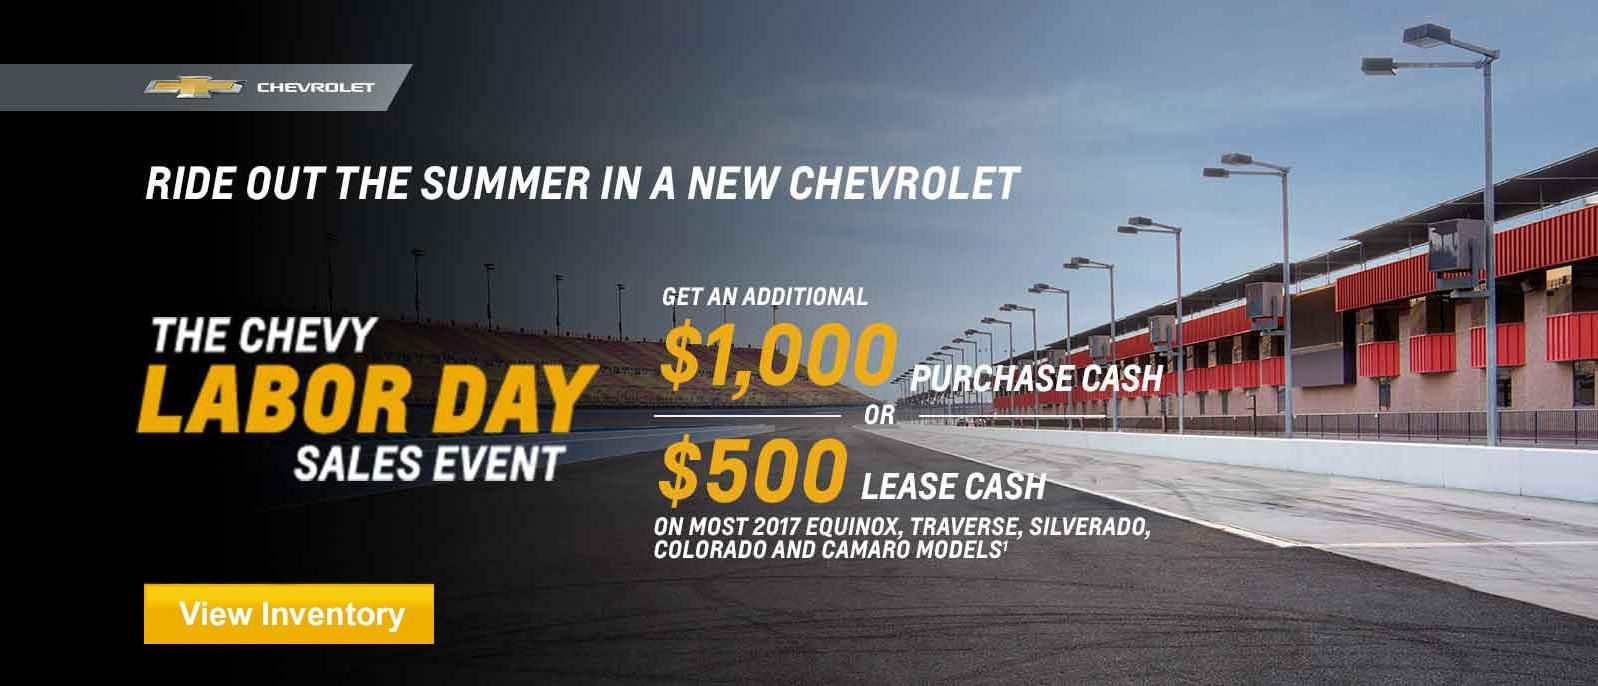 Labor Day Sales Event Chevrolet Chevrolet Dealership Camaro Models